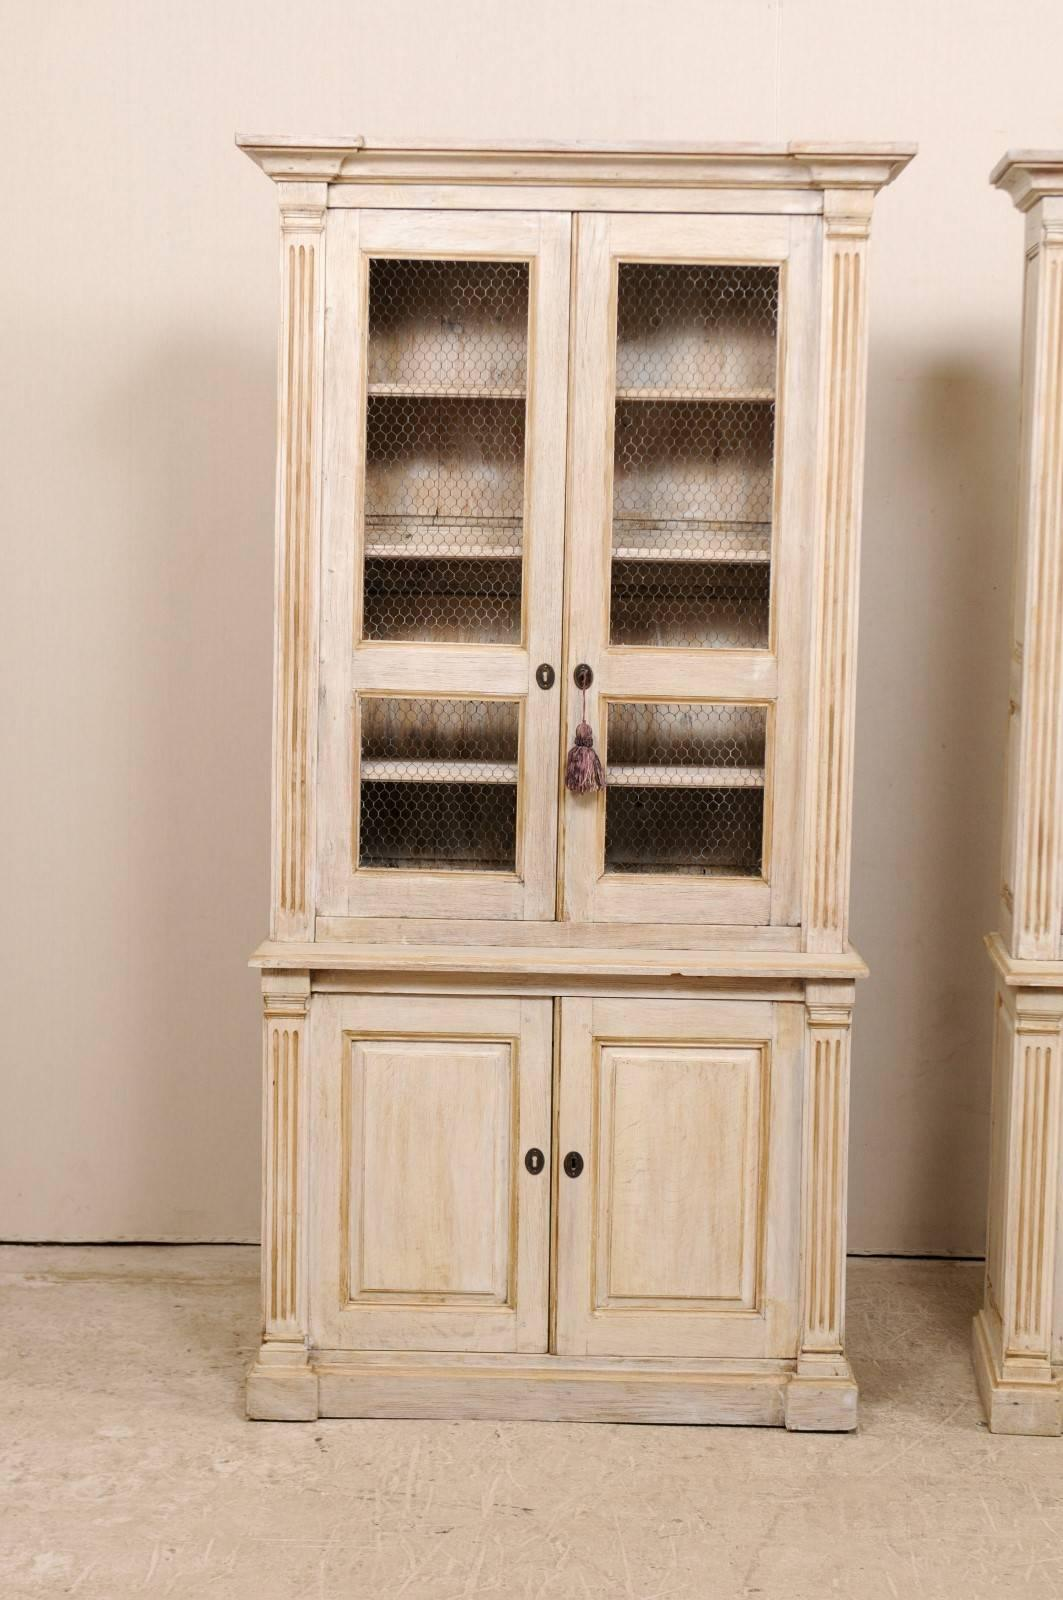 Charmant Pair Of 19th Century Tall Painted Wood Cabinets With Wire On The Cabinet  Doors At 1stdibs